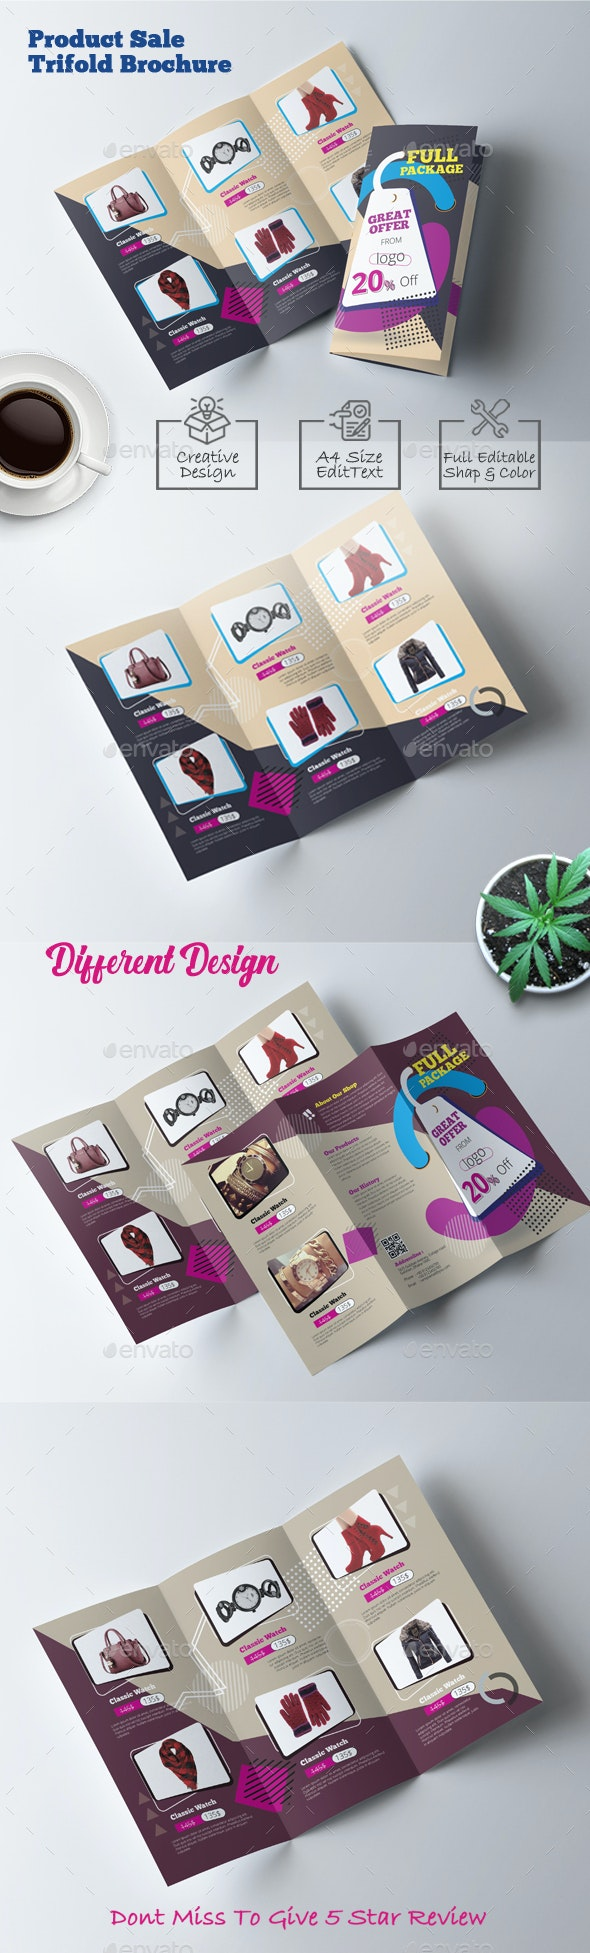 Product Catalog Trifold Brochure - Brochures Print Templates